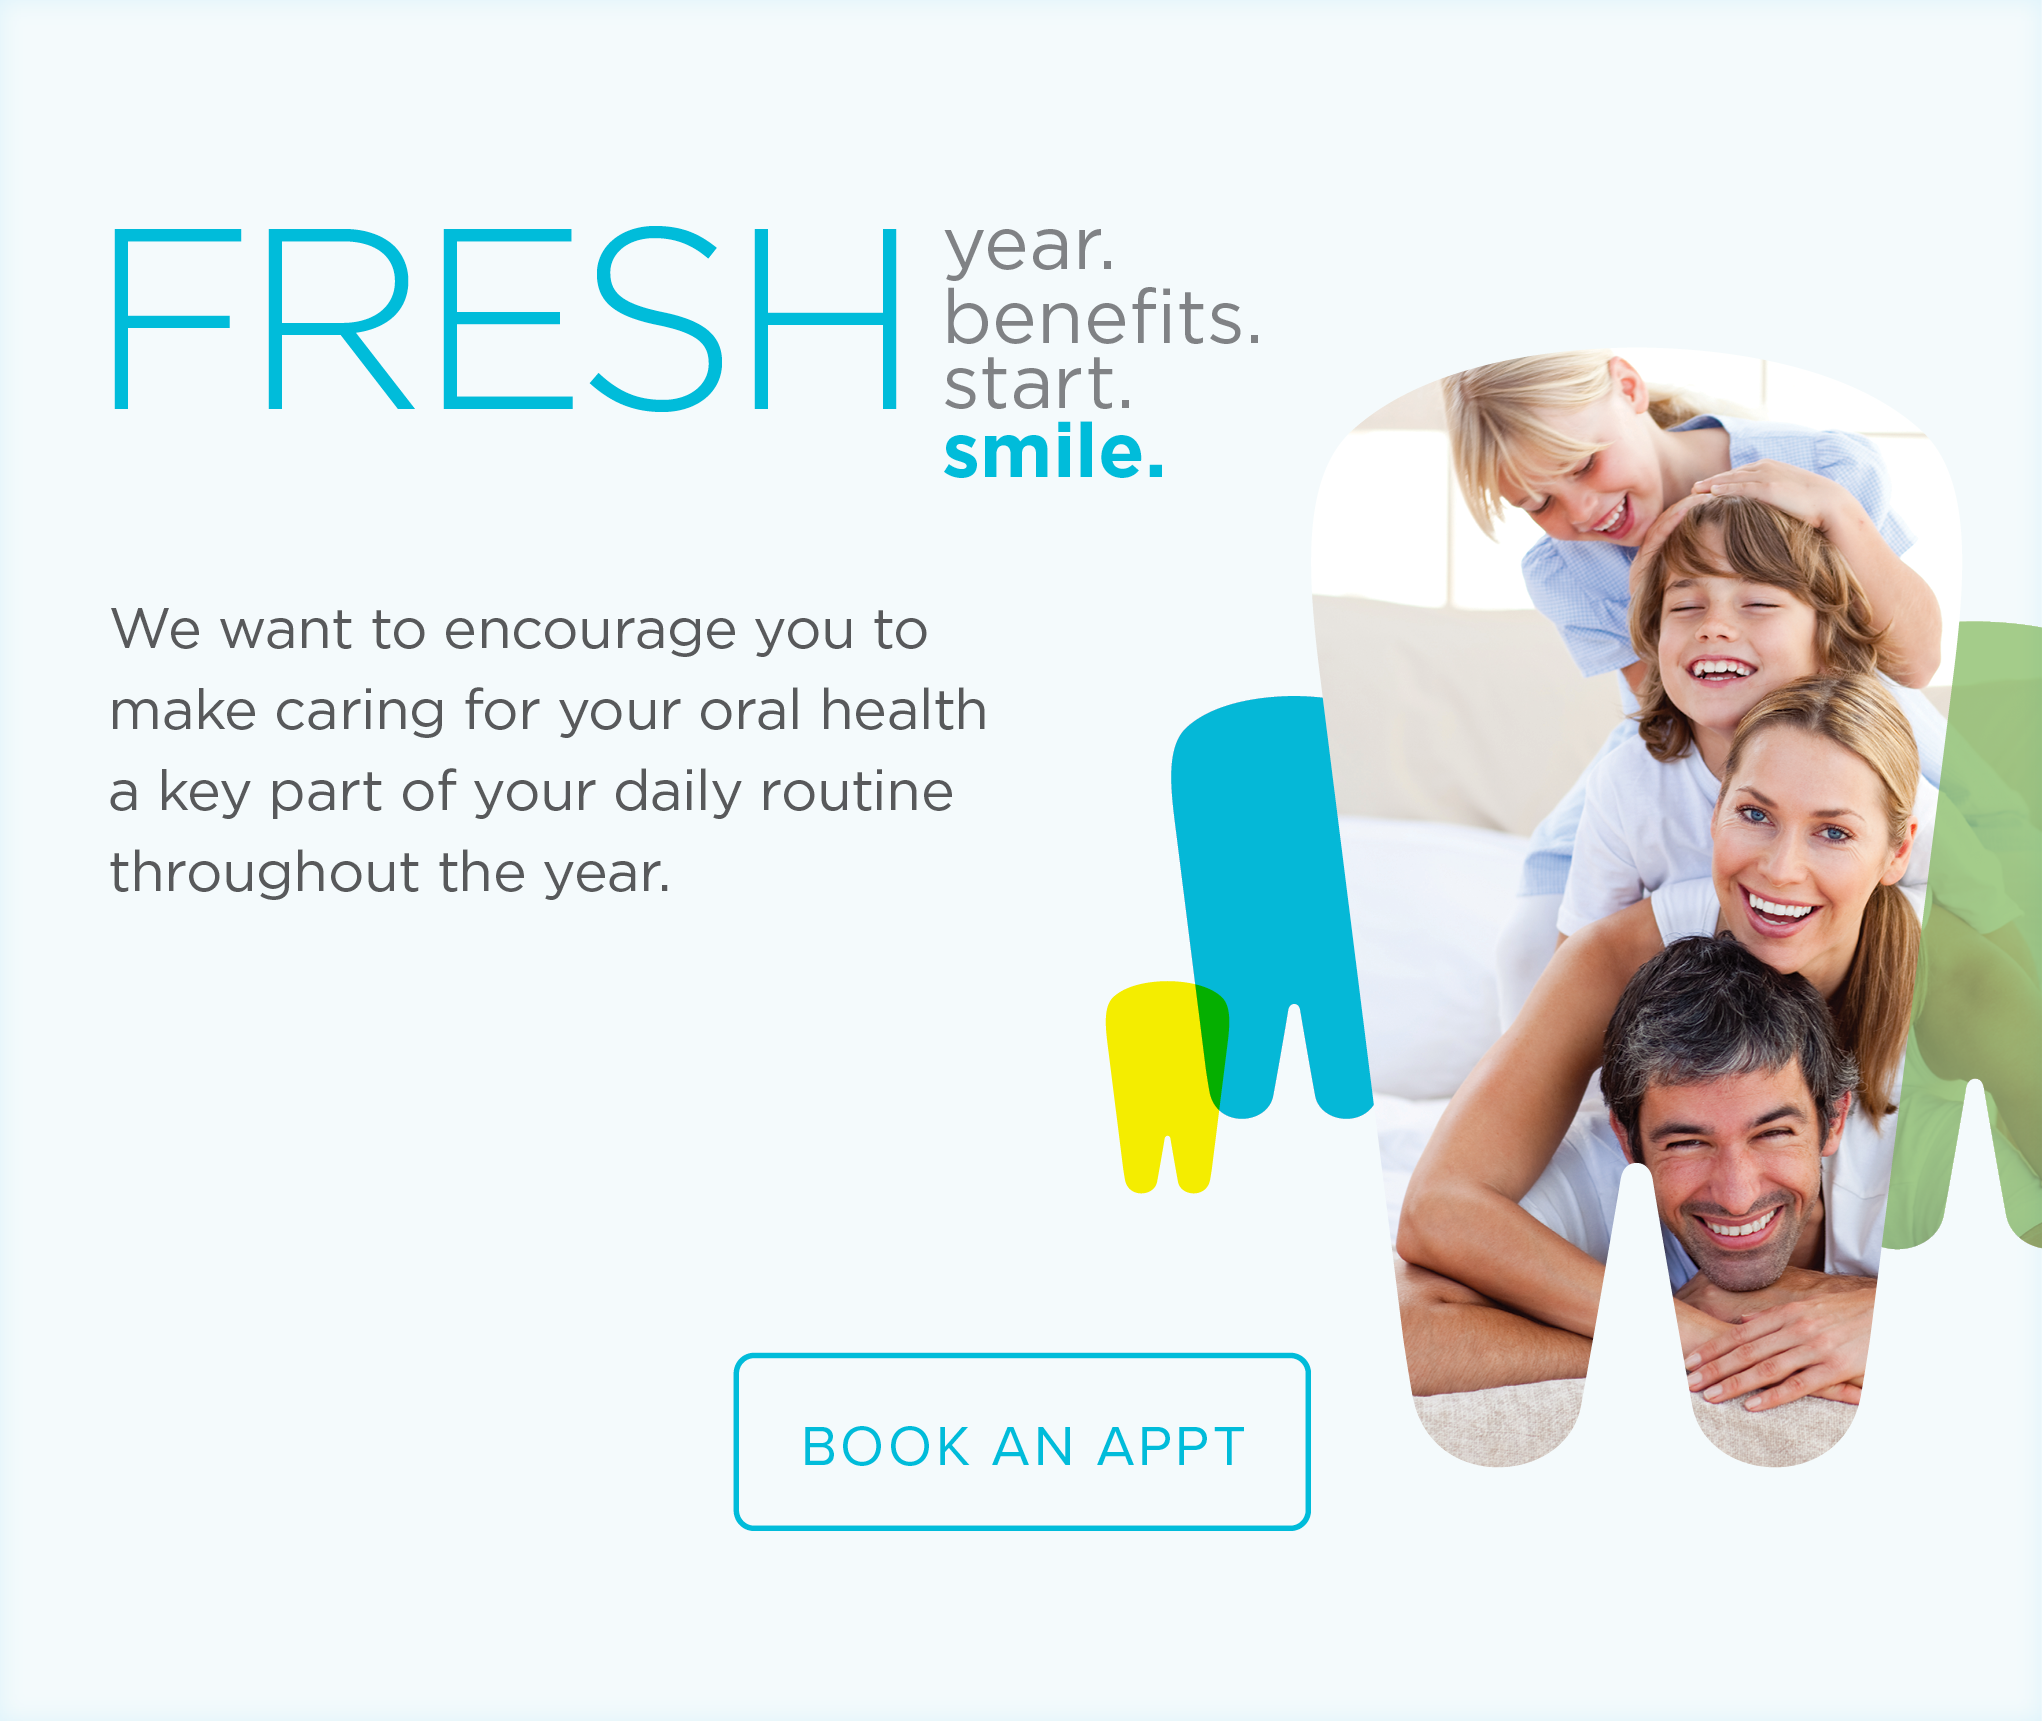 Hulen Modern Dentistry - Make the Most of Your Benefits